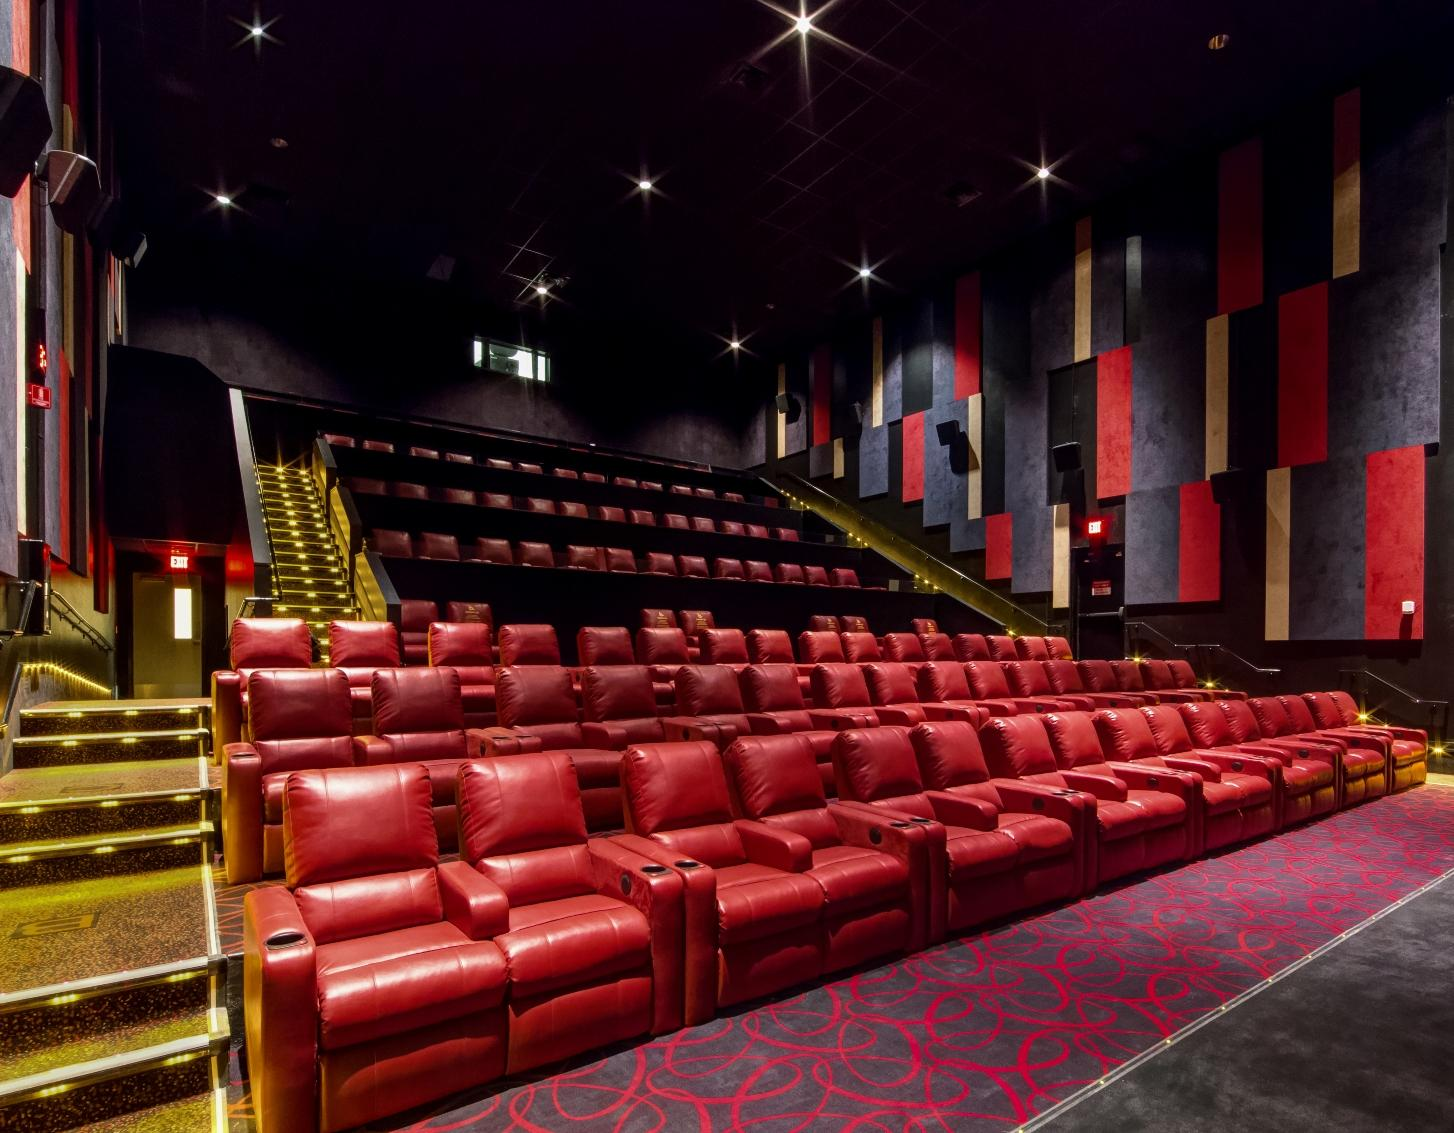 A photo provided by AMC Theatres on Friday, Aug. 4, 2017, shows a renovated auditorium at AMC Bakersfield 6 in Bakersfield, Calif. The theater is reopening Friday after renovations started in June.